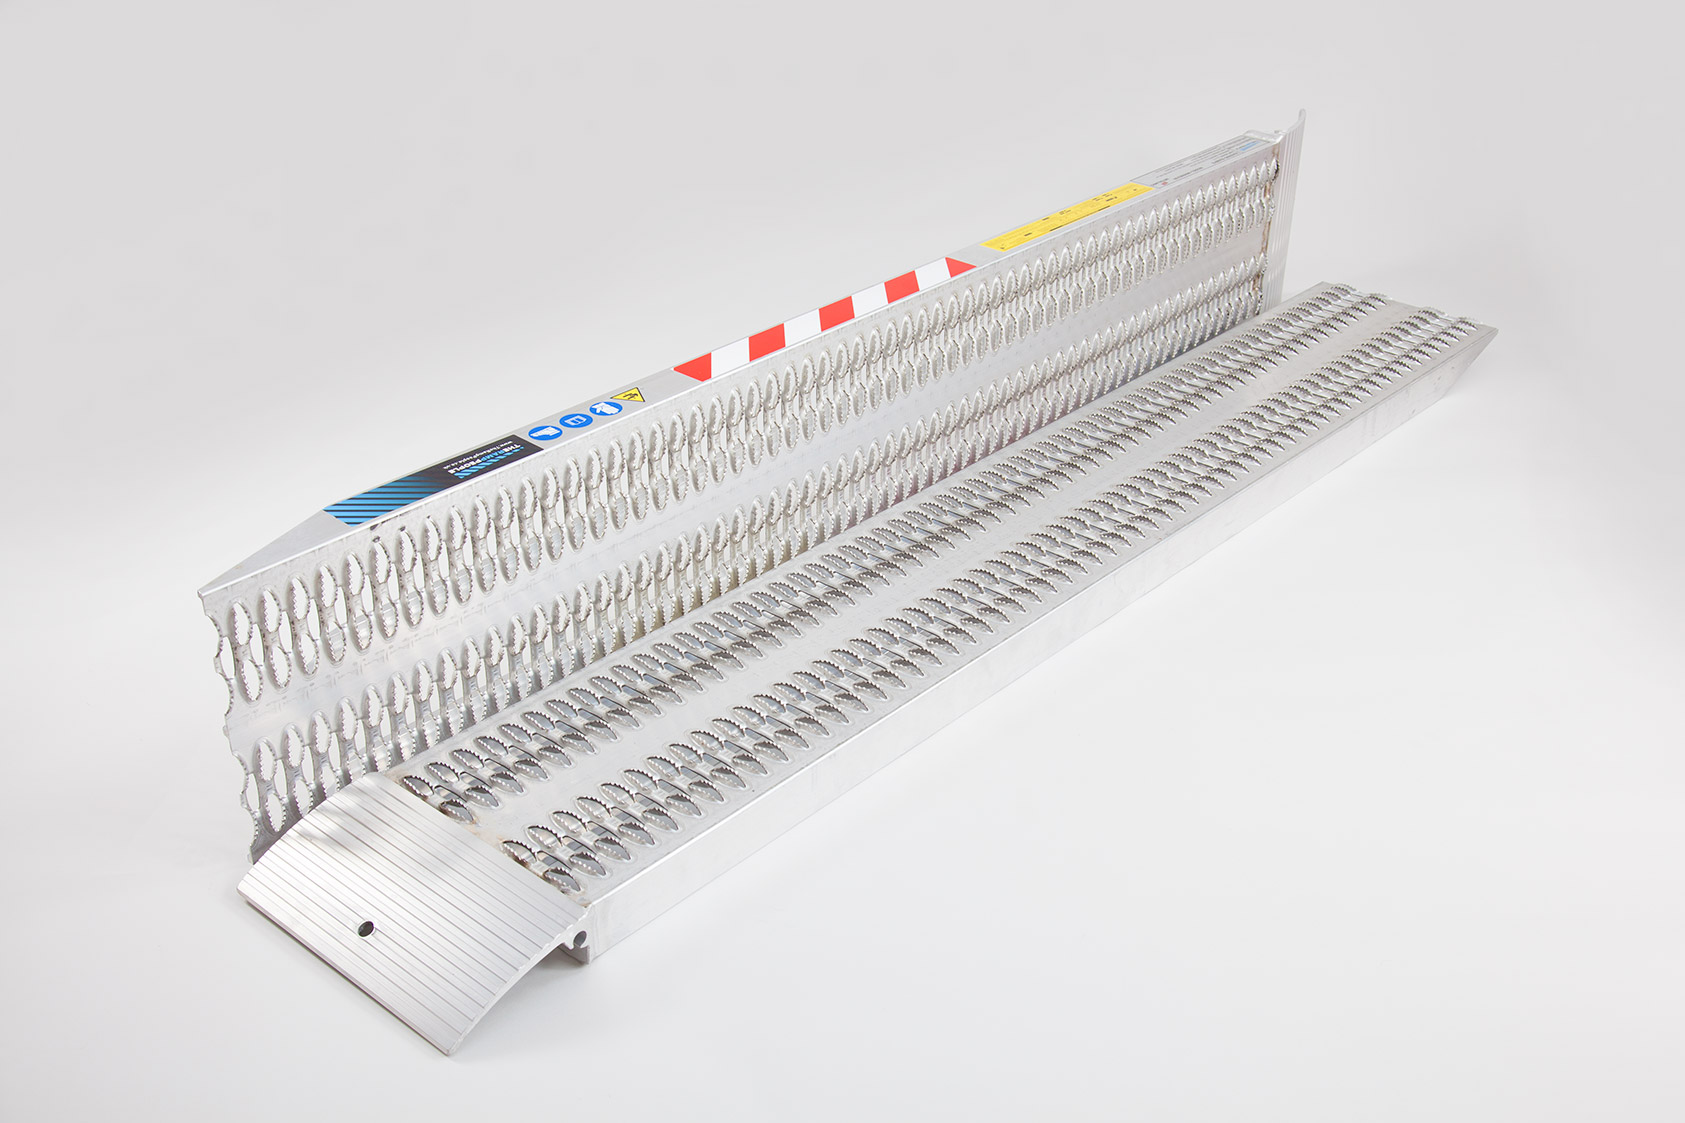 Non-Folding Loading Ramps for Professional Use